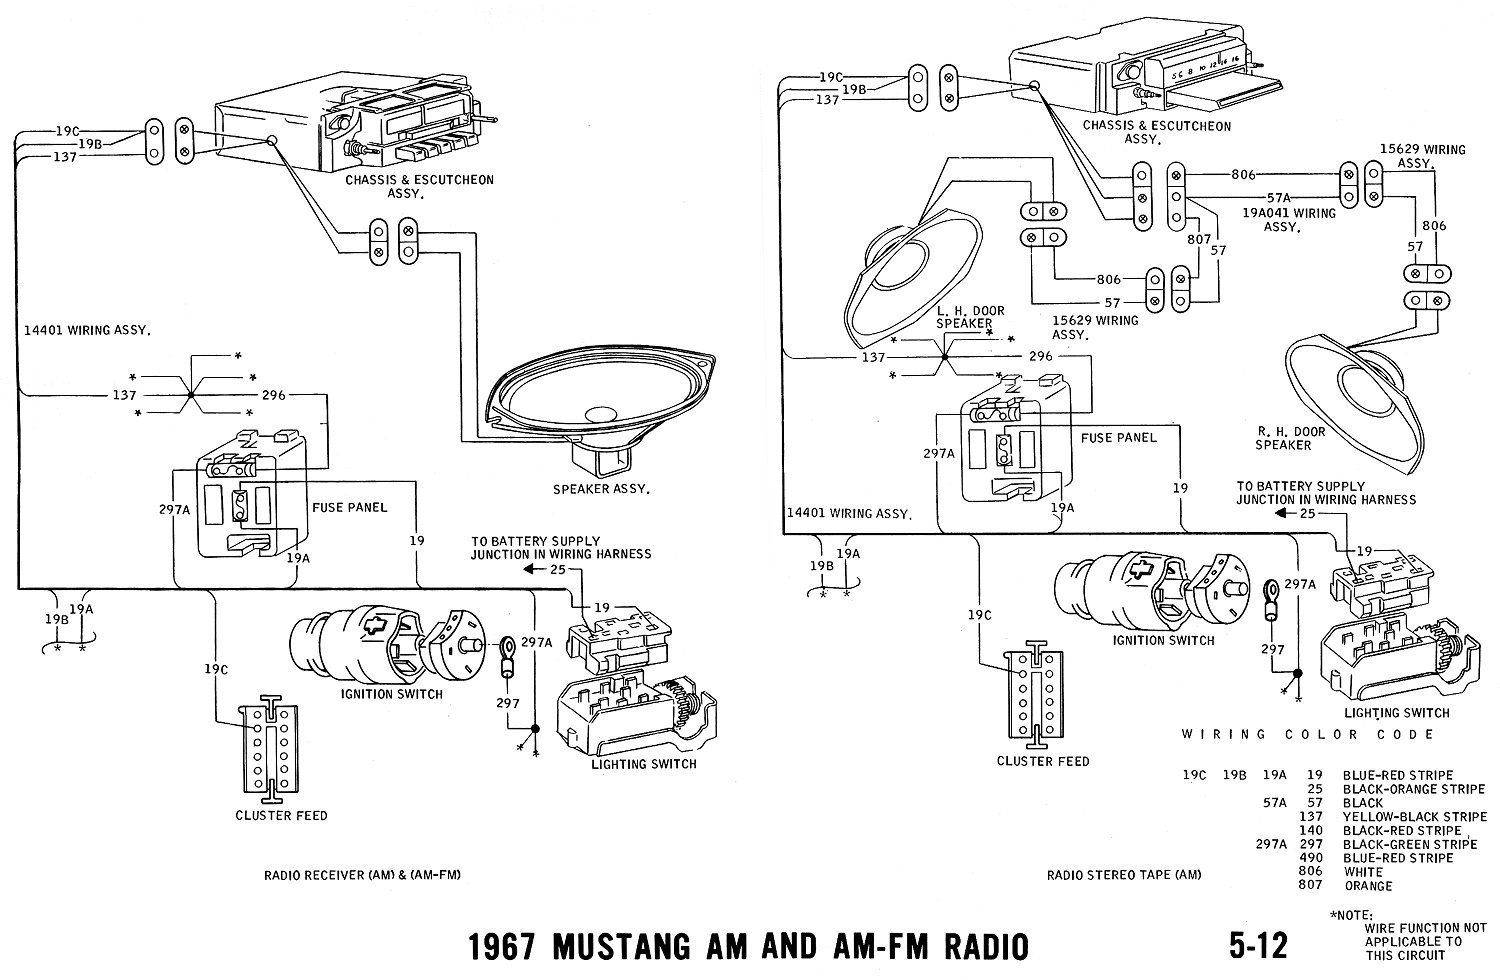 Mercury Cougar Radio Wiring Diagram Custom Project Gm For 1997 1967 Mustang And Vacuum Diagrams Average Joe